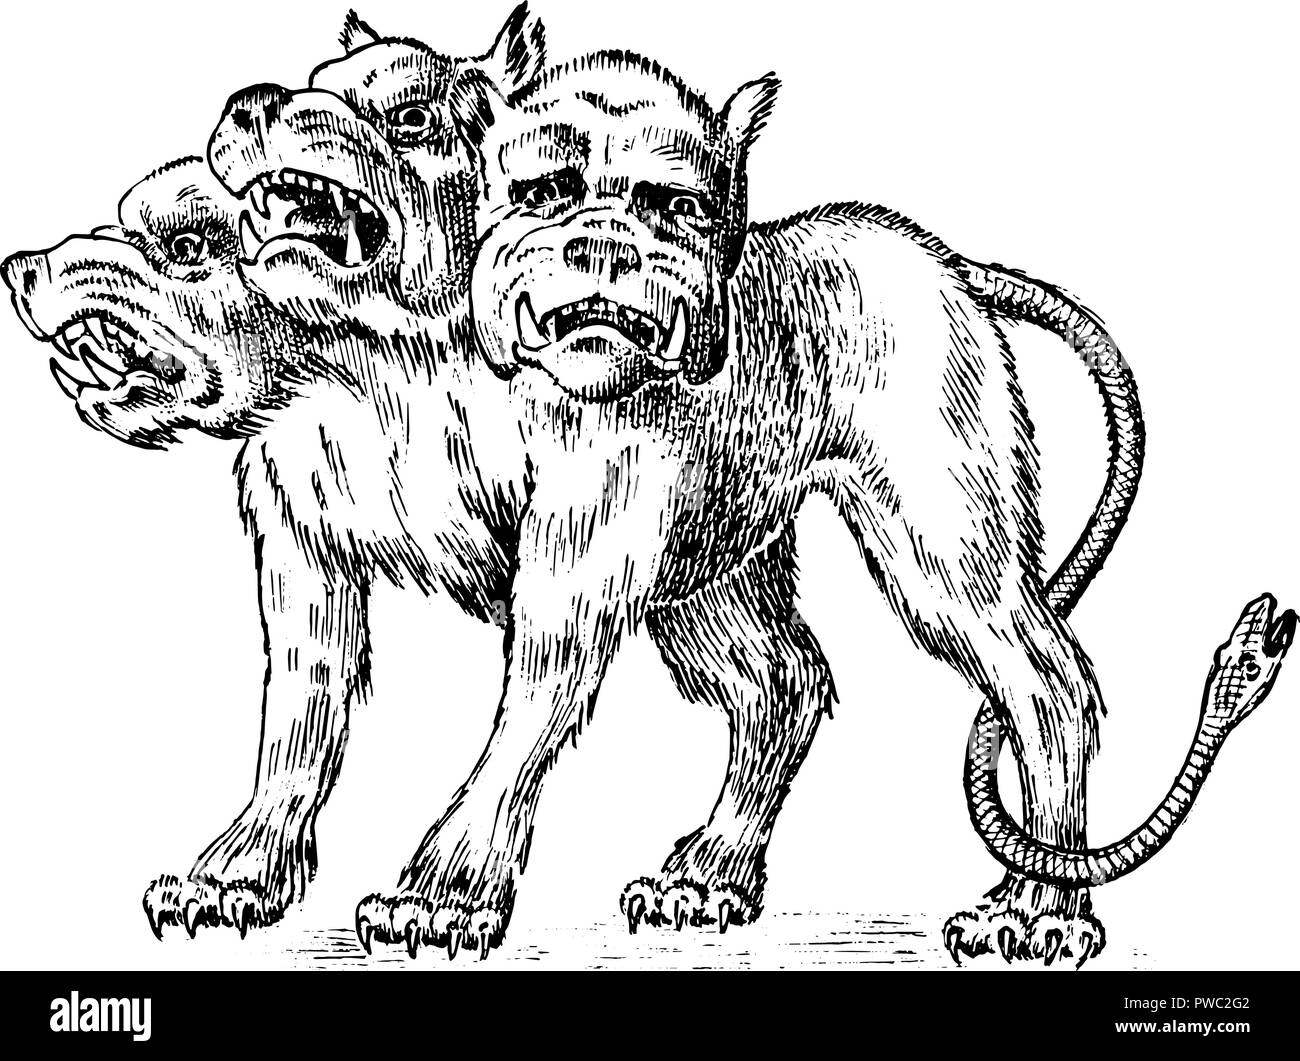 Cerberus three headed dog mythical greek antique monster mythological animal fantastic creatures in